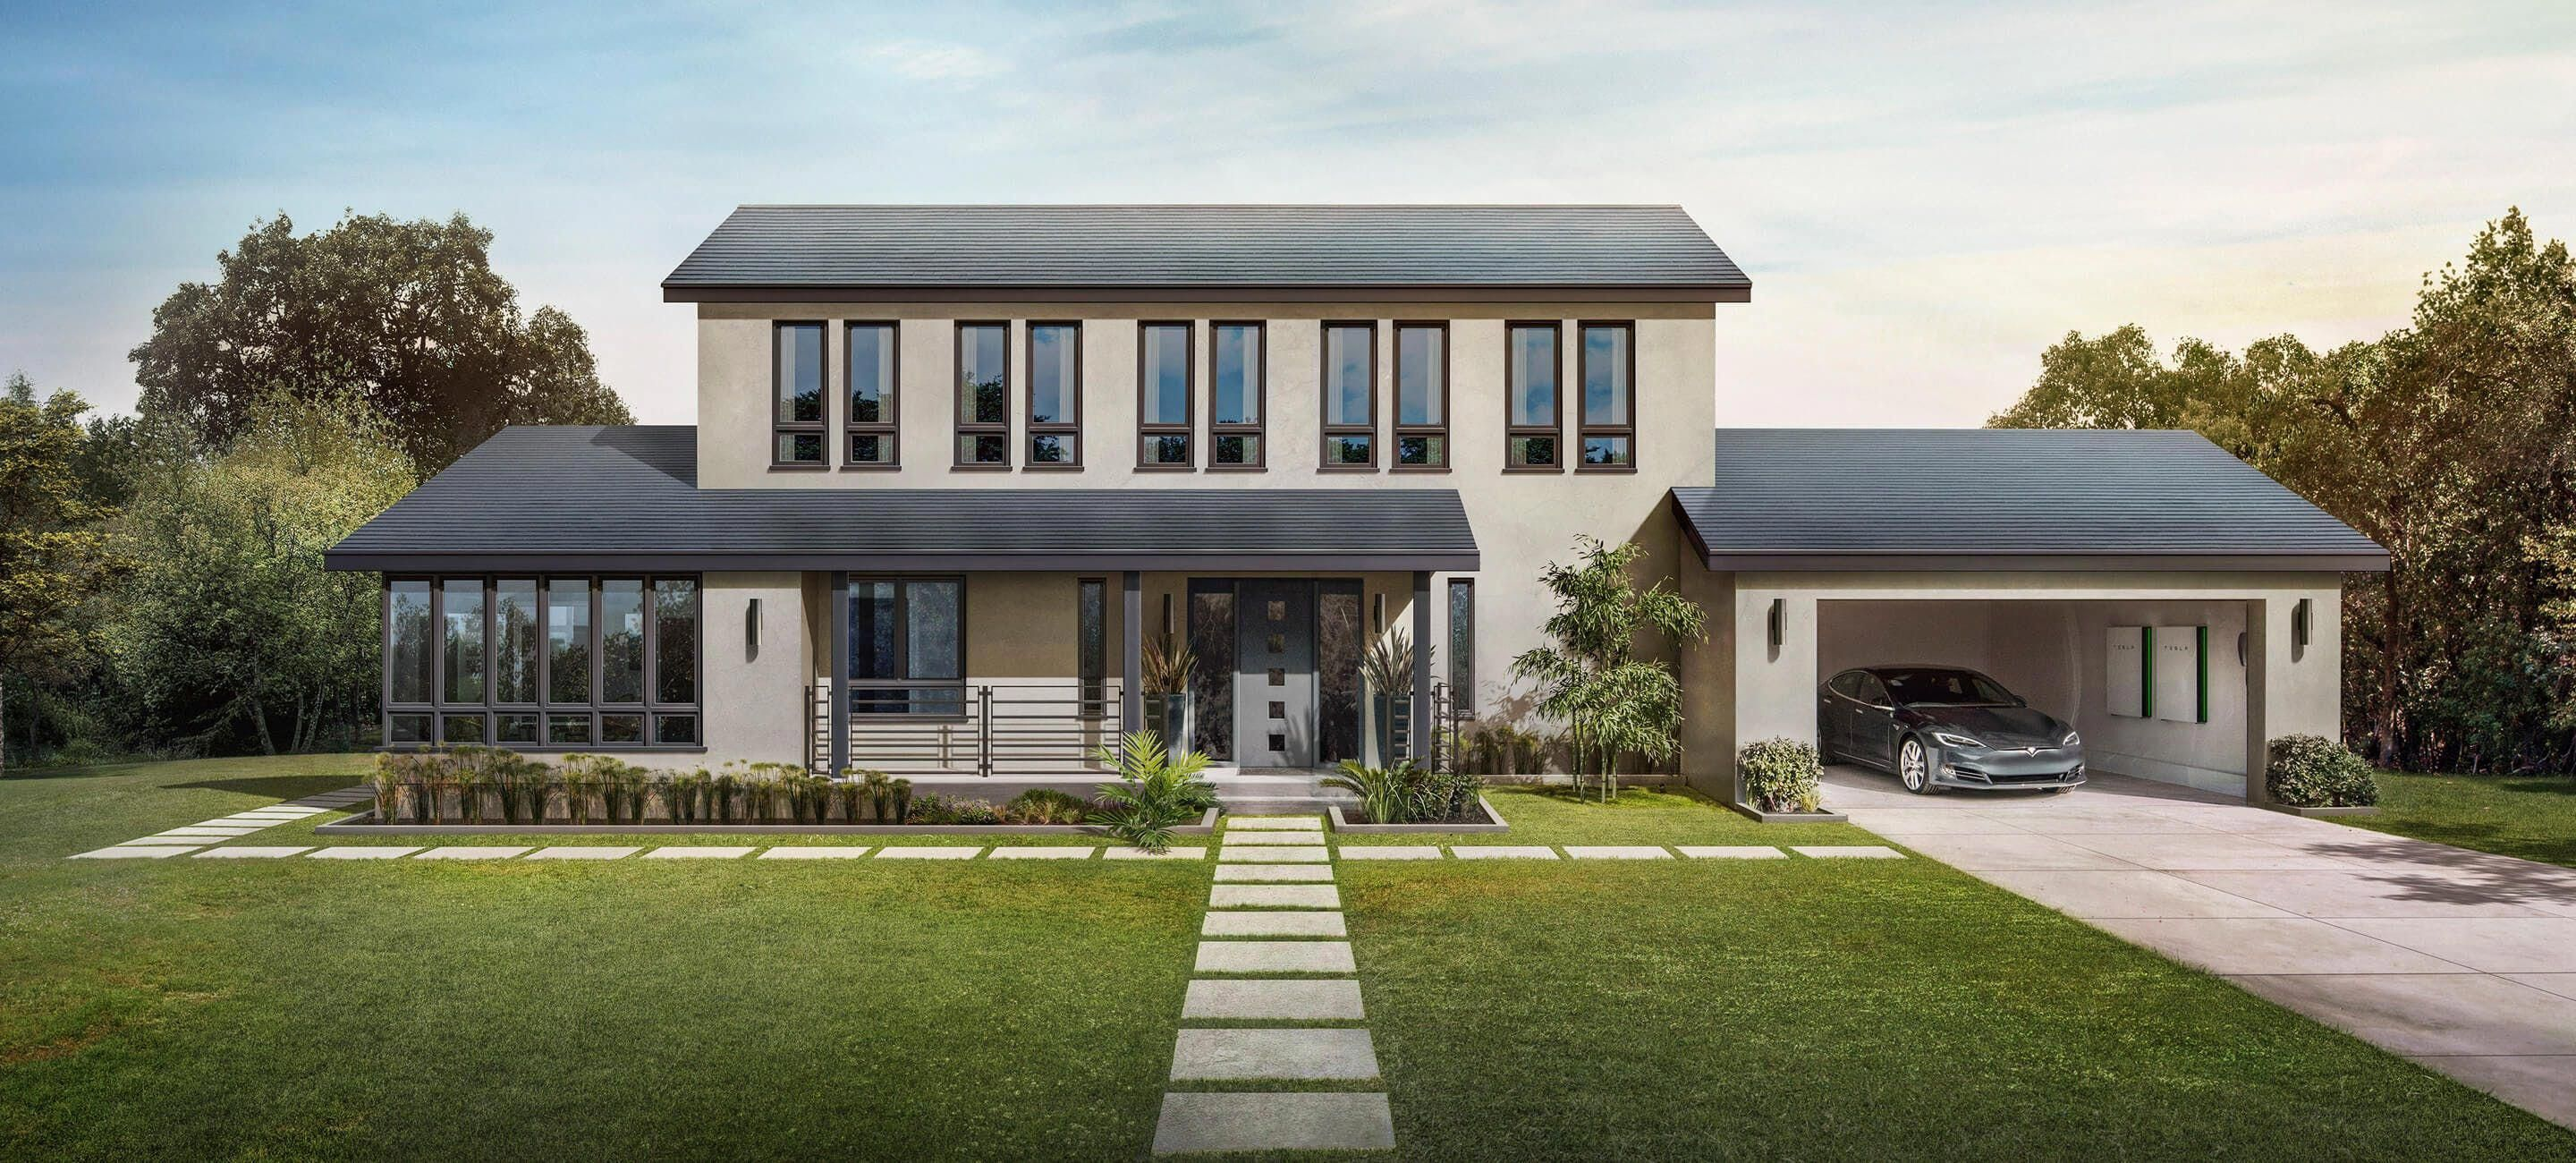 Tesla S Solar Roof Tiles Are Cheaper Than A Normal Roof Must Have For Our Off The Grid House In 2020 Tesla Solar Roof Best Solar Panels Solar Panels